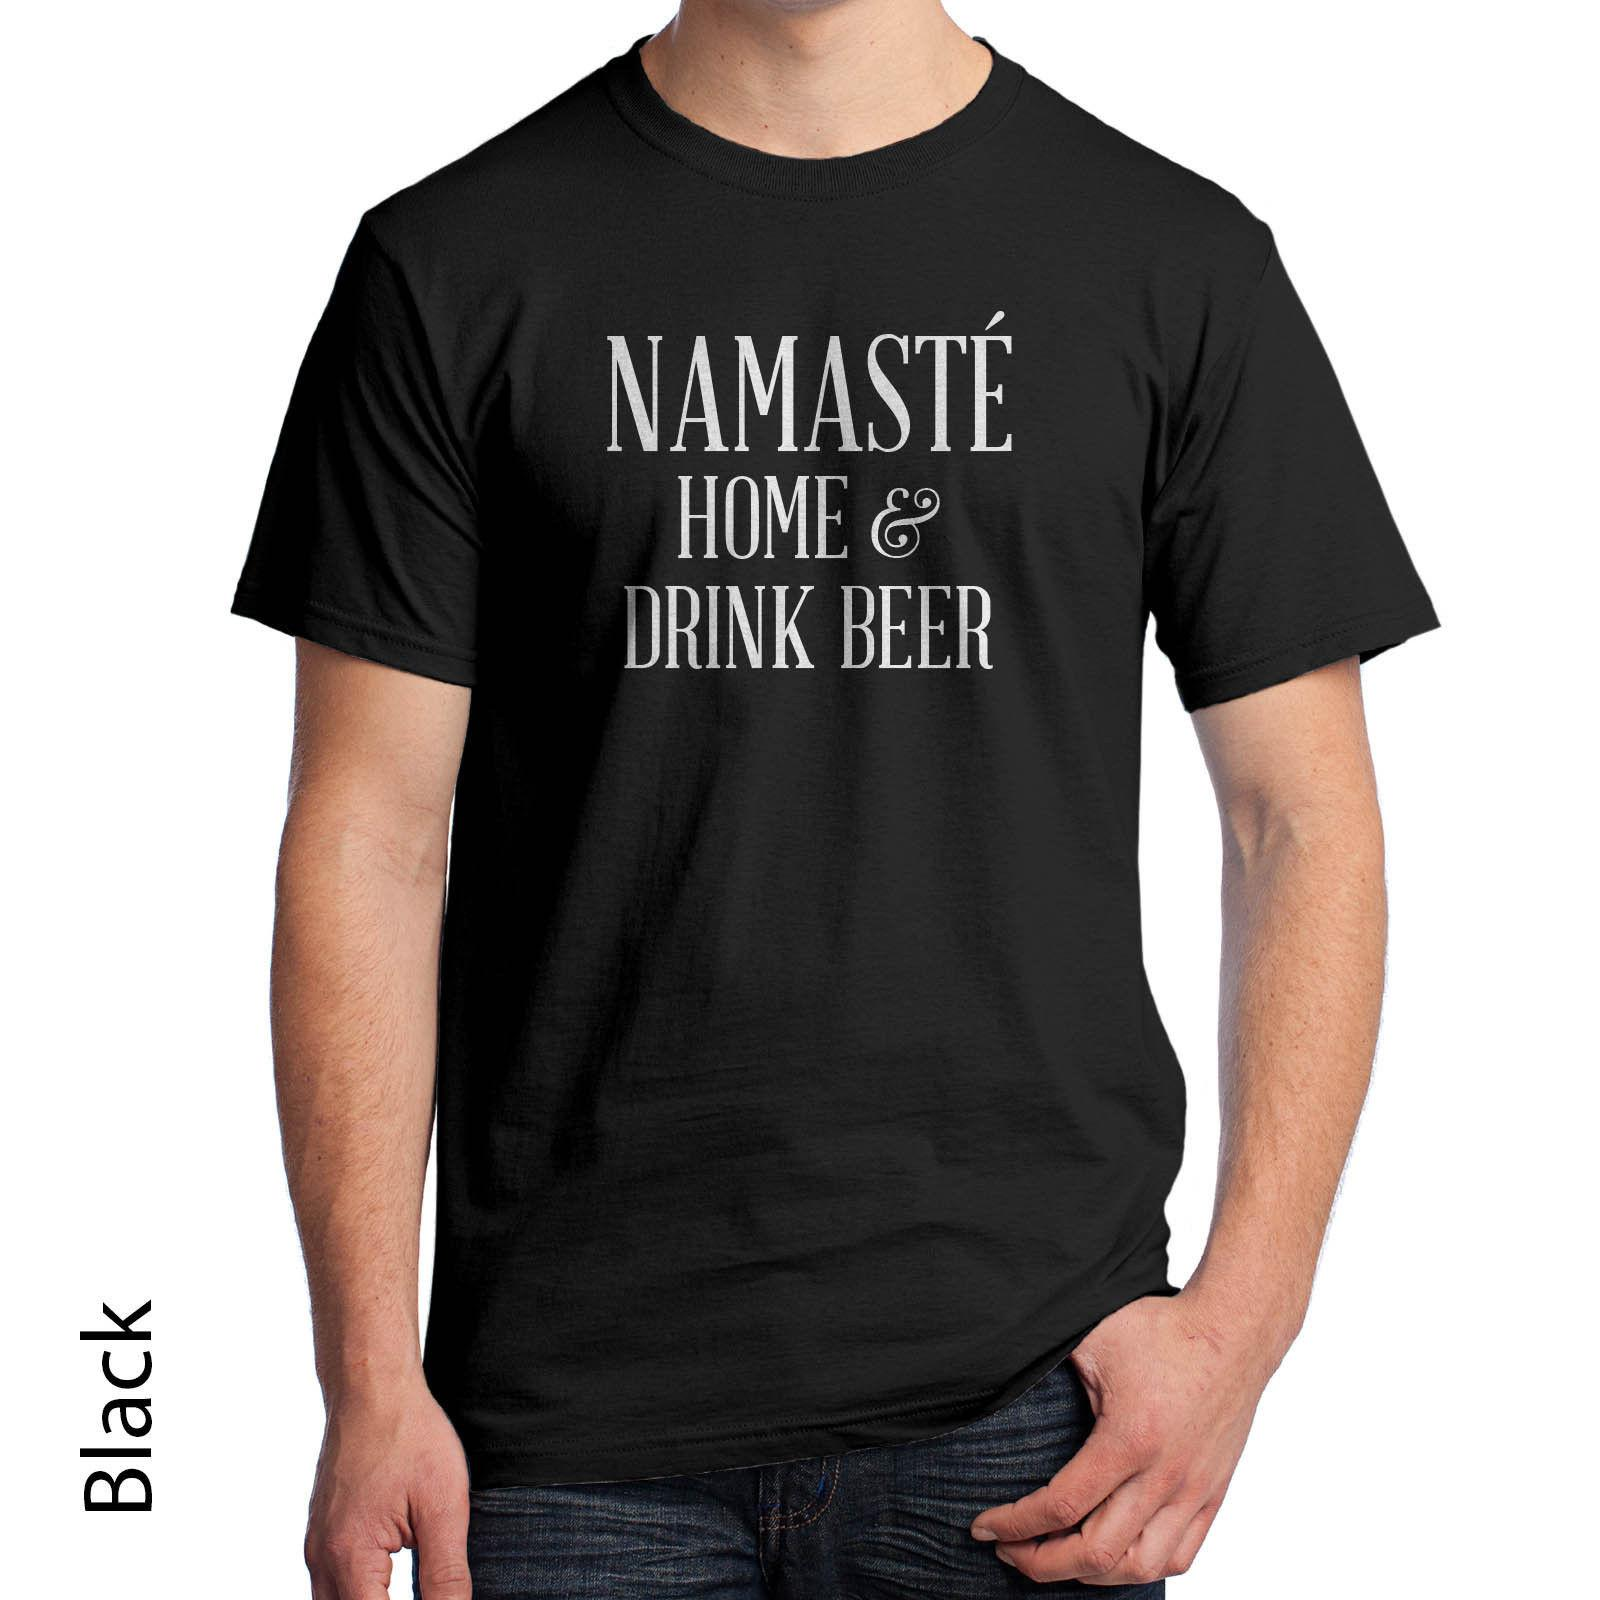 b0f4fc45ea Namaste Home And Drink Beer T Shirt Men'S Yoga Shirt I'D Rather Relax 983  Funny Unisex Casual Top Shirt Unique T Shirts For Sale Design 1 T Shirt  From ...